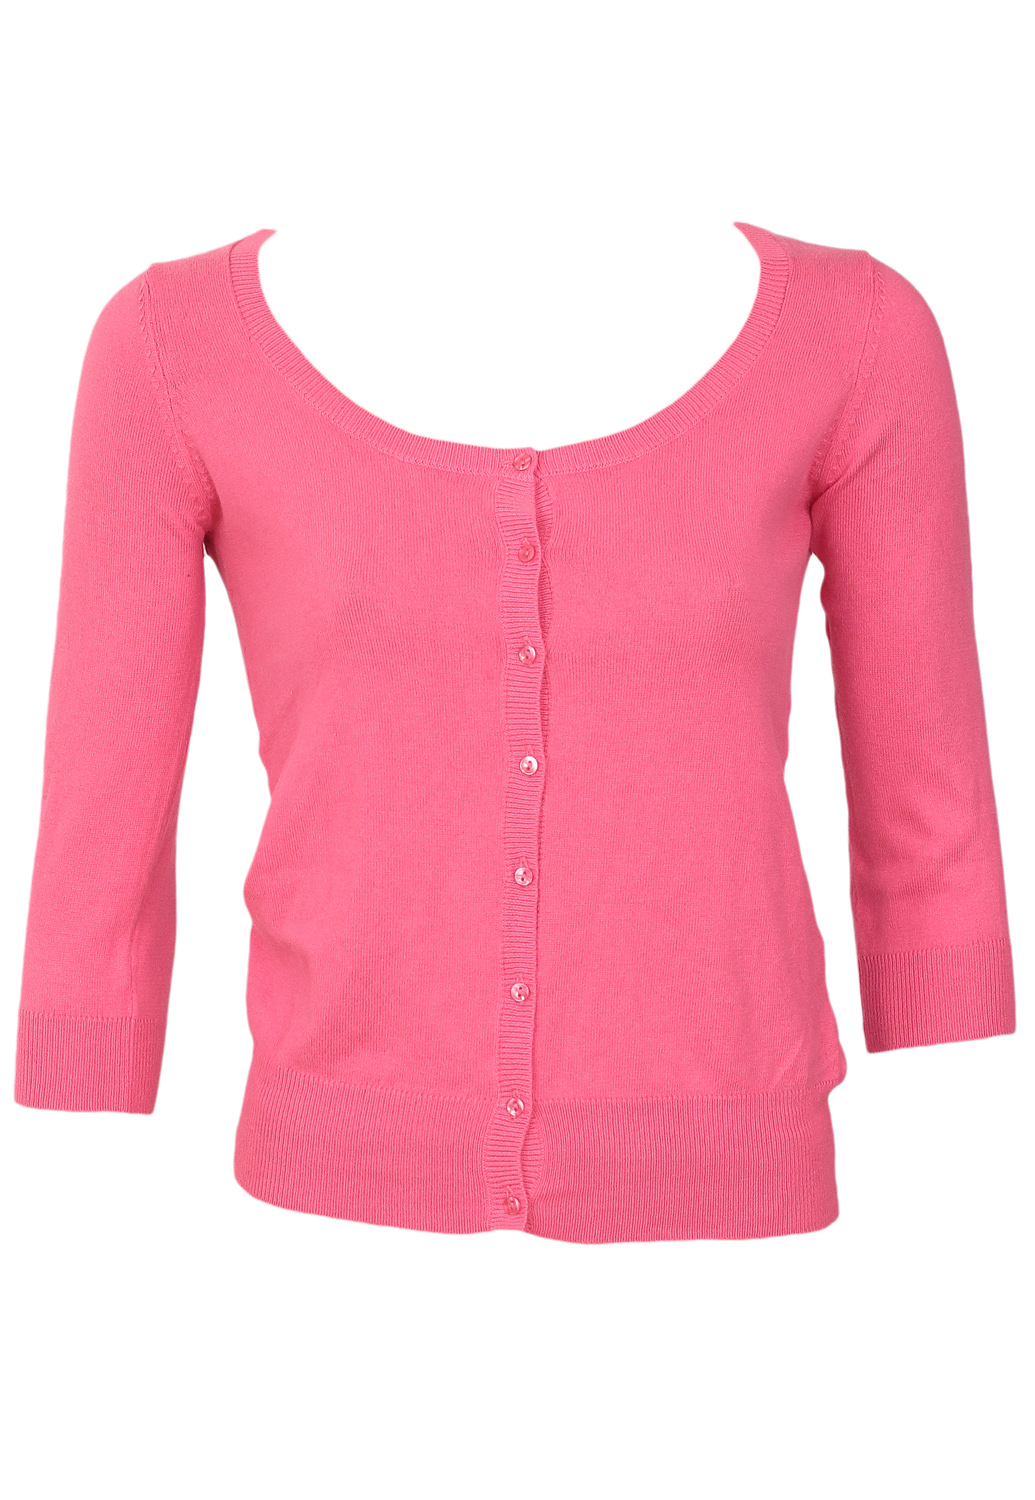 Jerseu ZARA Simple Pink